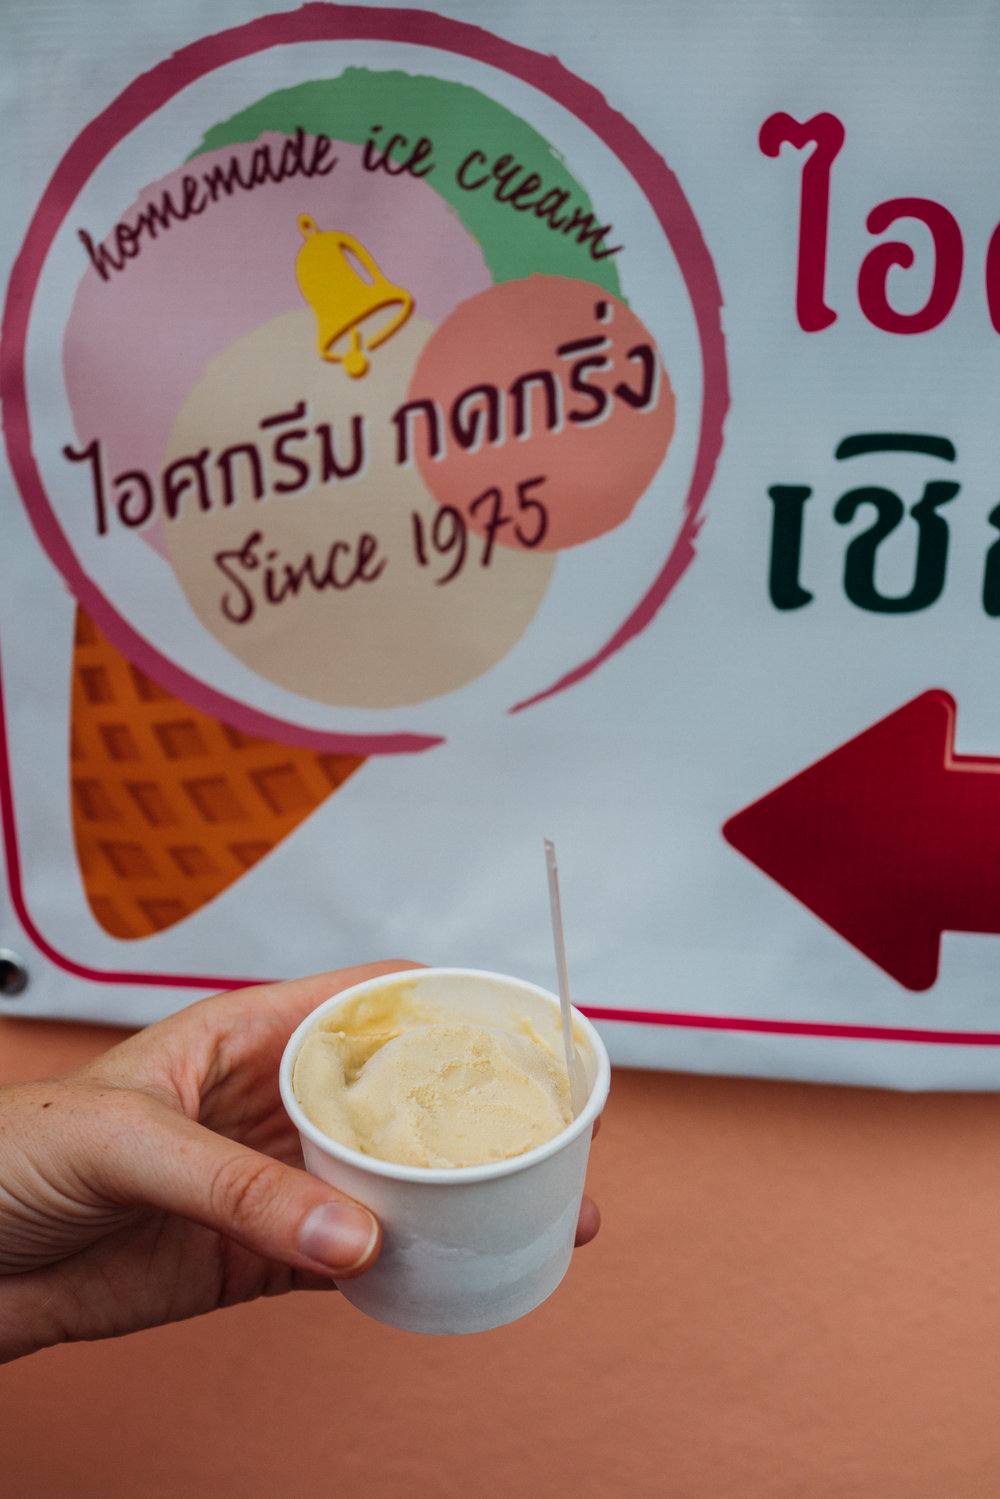 A cup of mango sticky rice ice cream